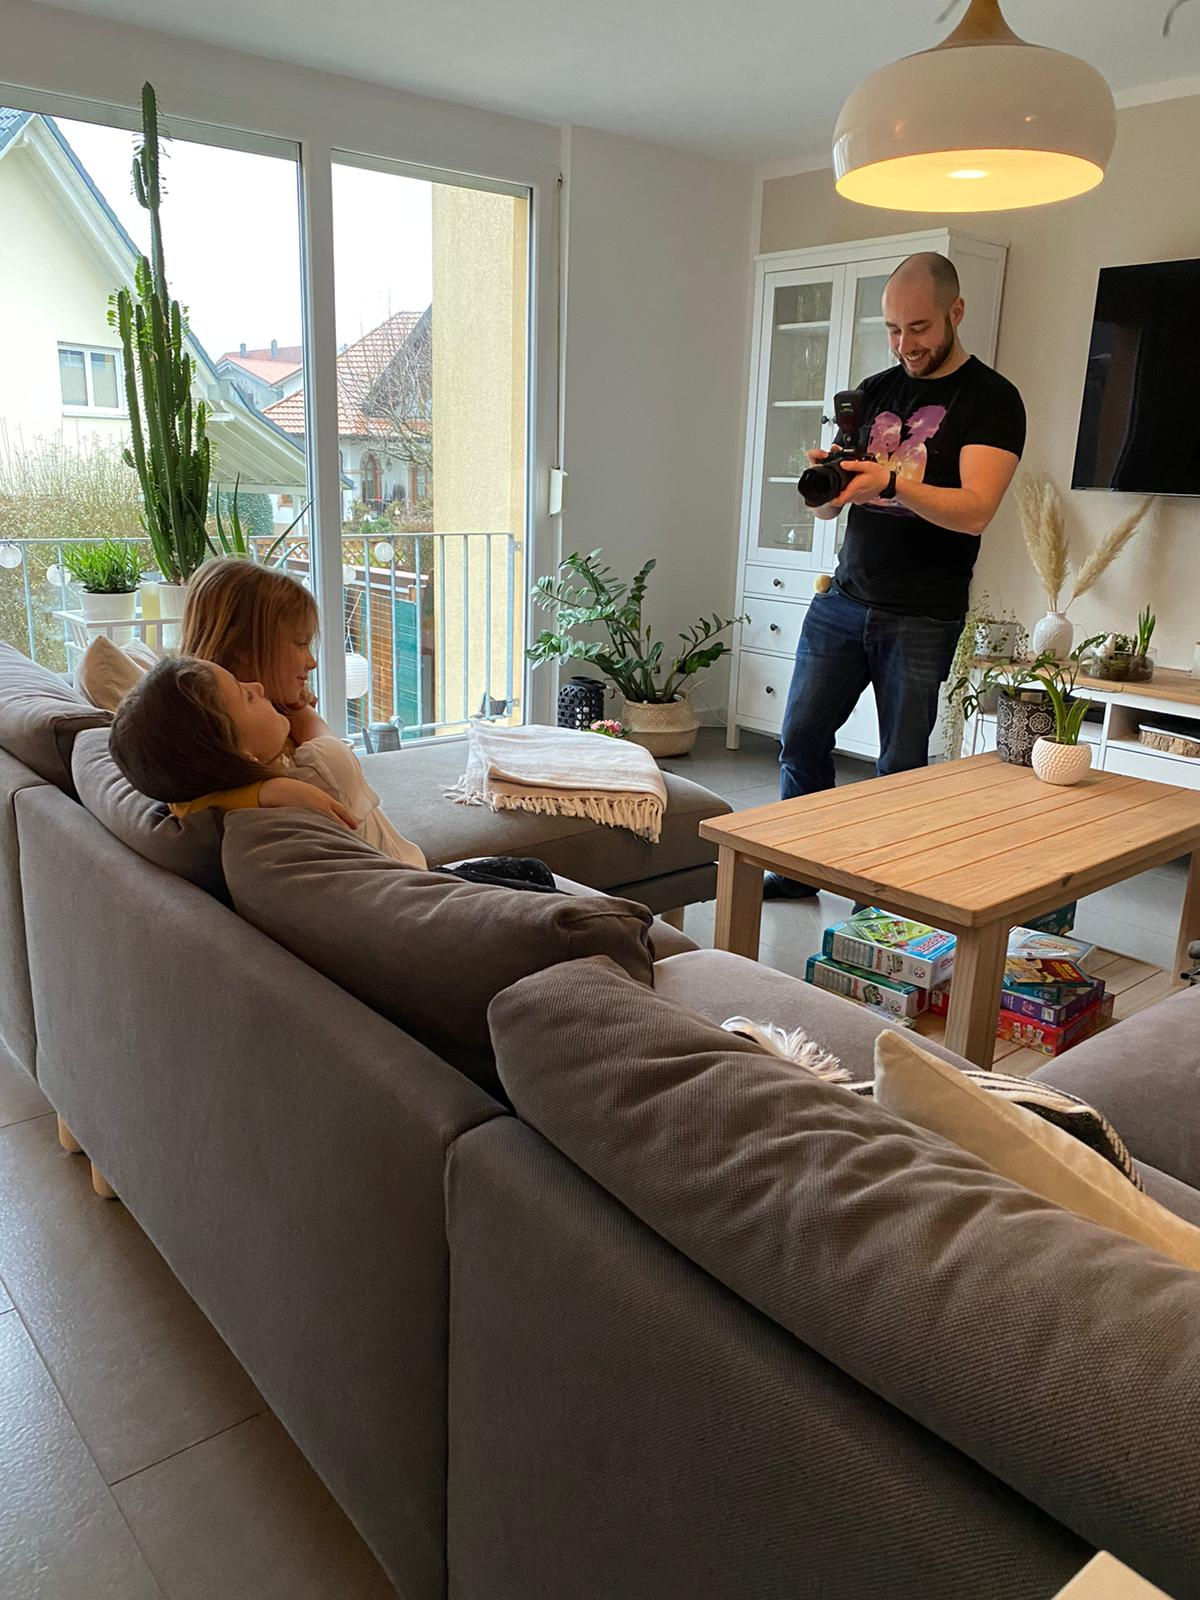 Kundenshooting Homestory